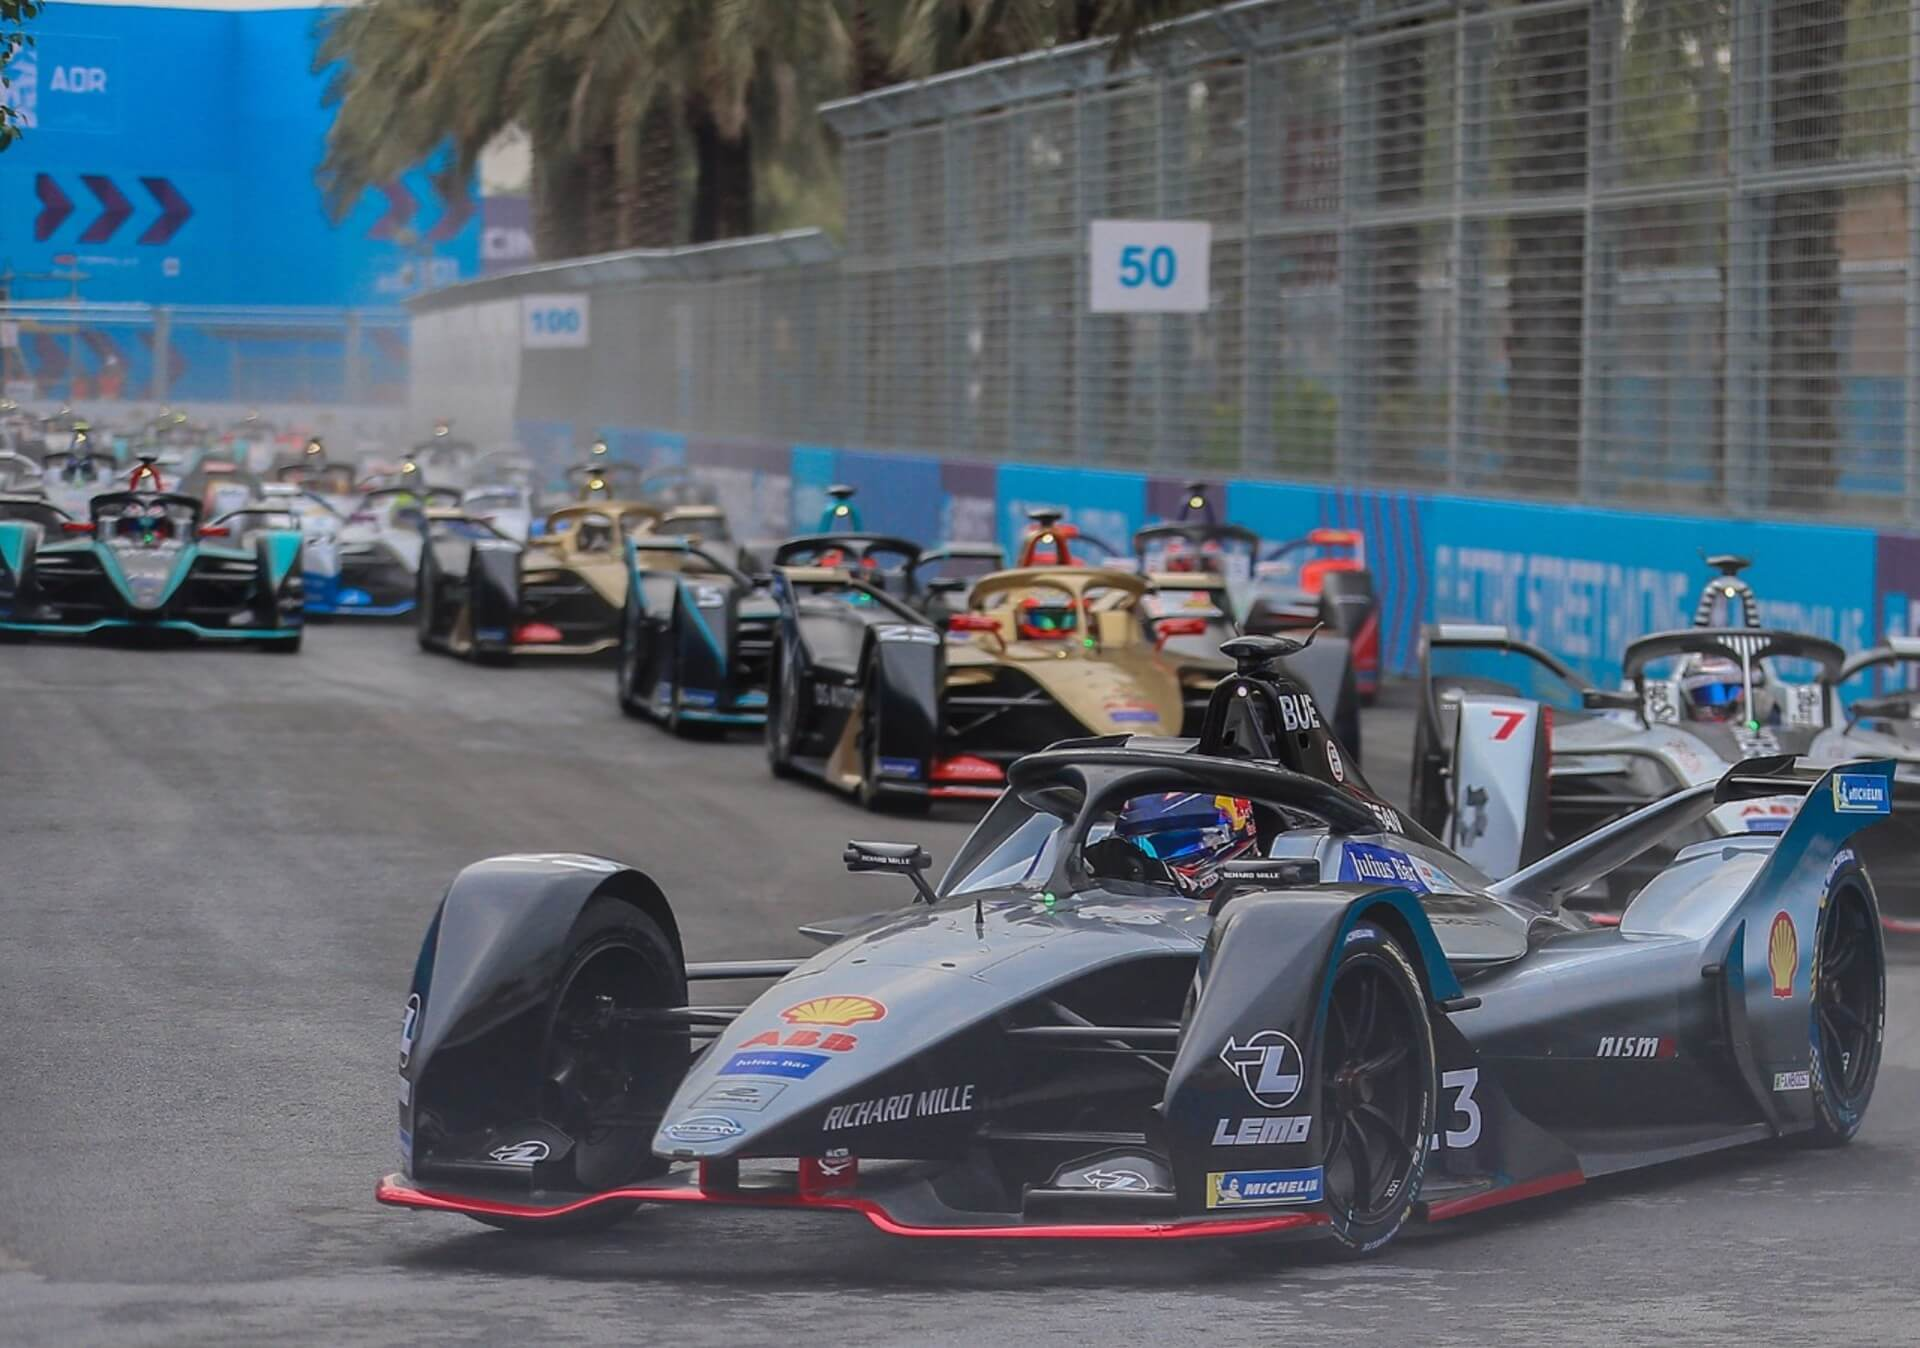 TICKETS ON SALE FOR THE MOST ELECTRIFYING SPORTS EVENT IN THE MIDDLE EAST AS FORMULA E ACTION RETURNS TO SAUDI ARABIA